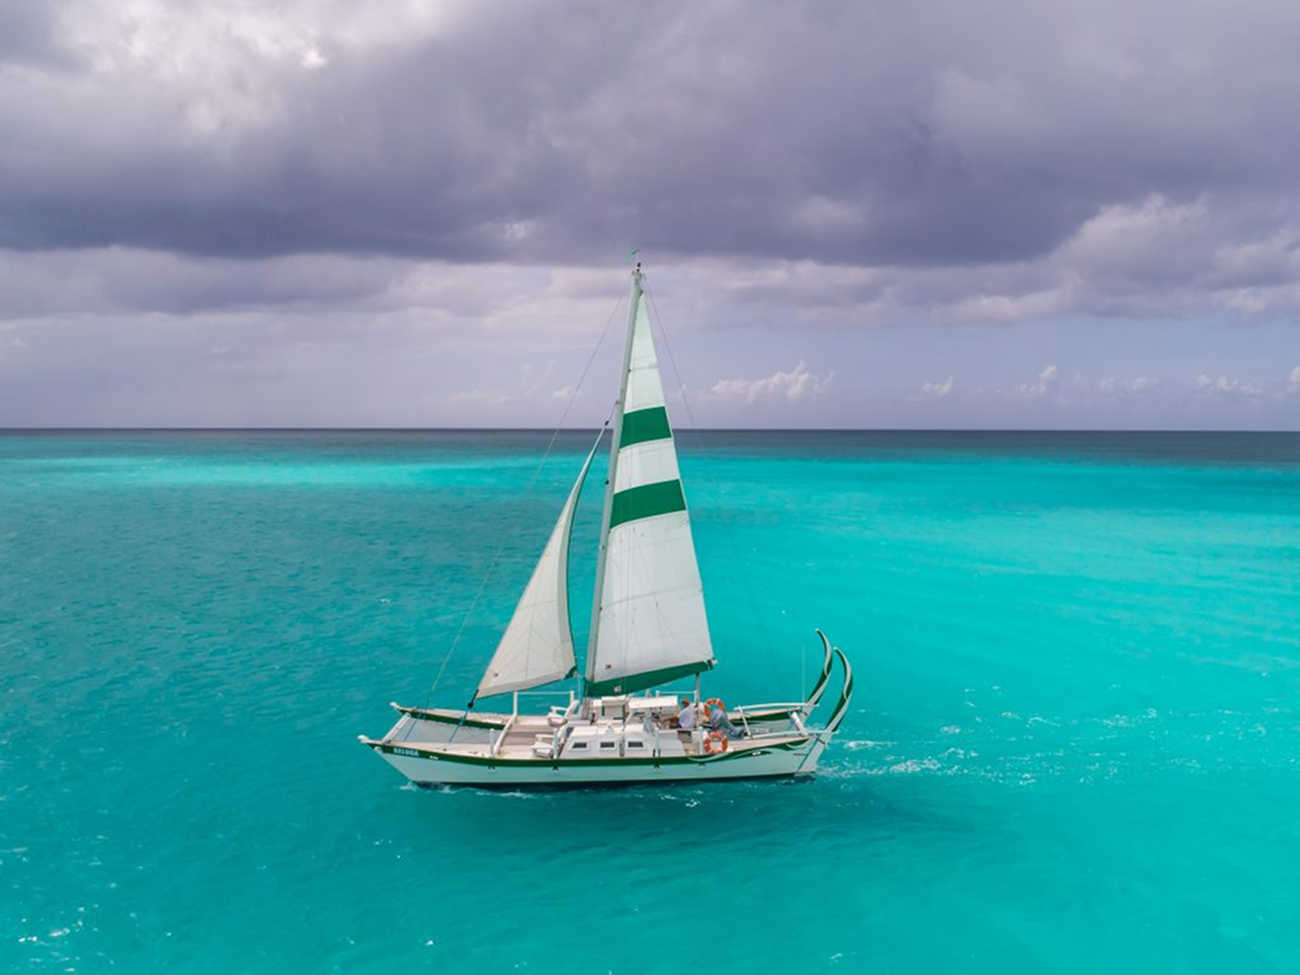 Raka with green and white colours and very high rudders, sailing on a light blue sea, cloudy sky